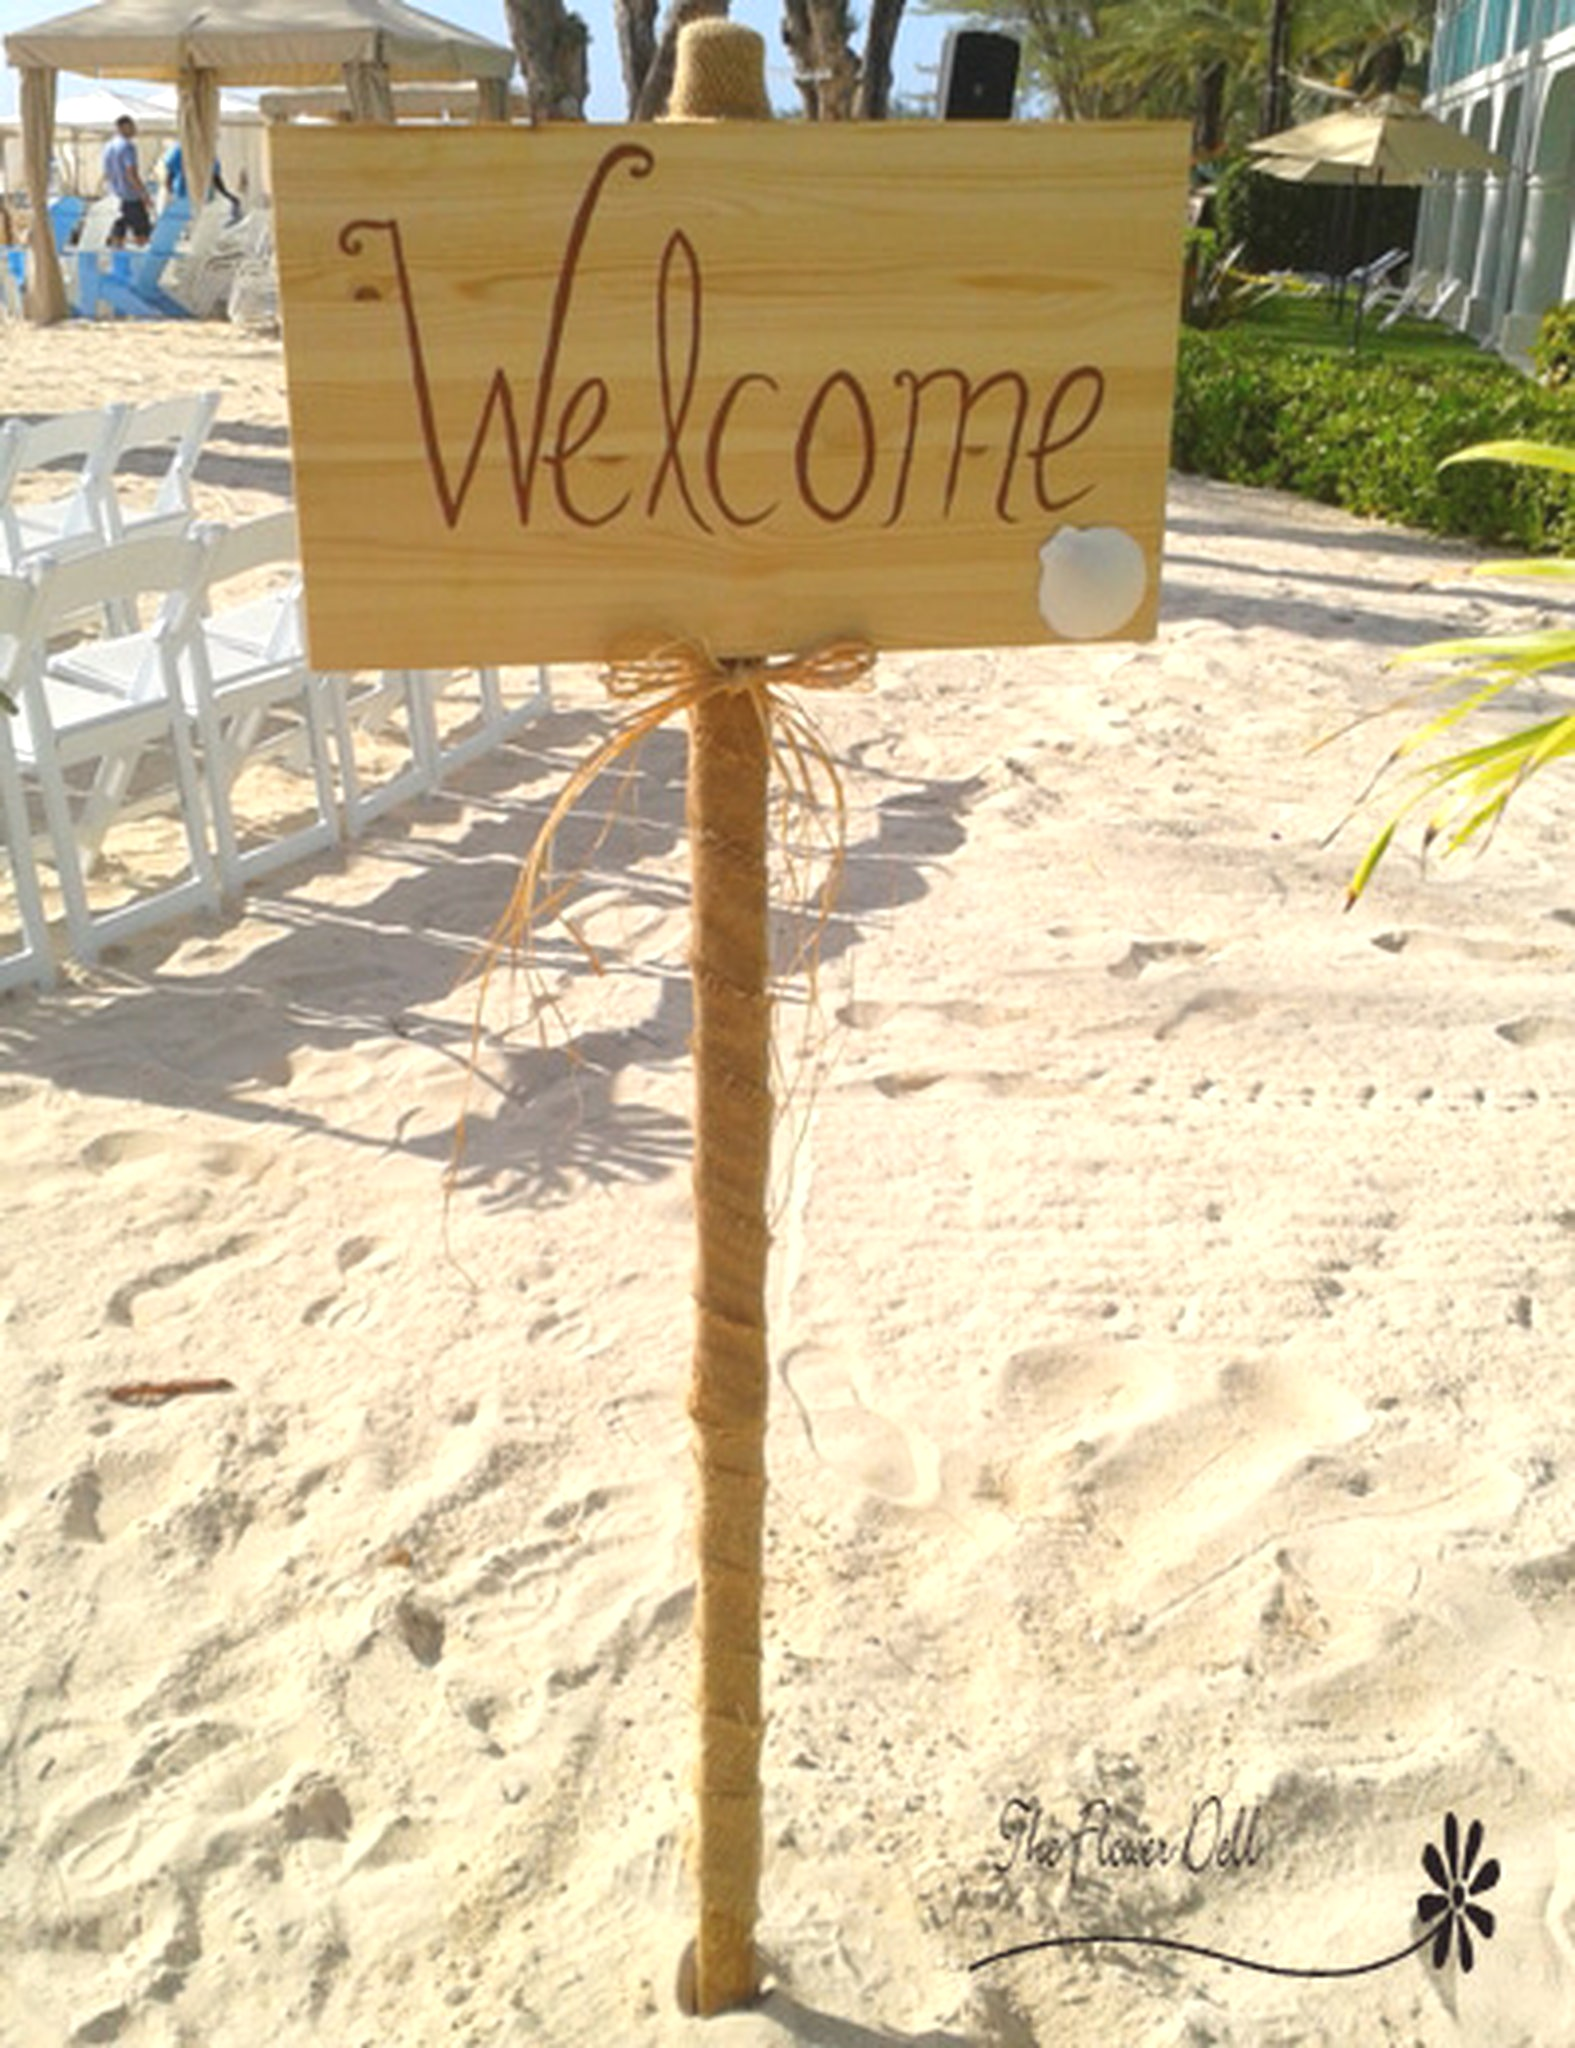 Welcome-sign_Easy-Resize.com.jpg